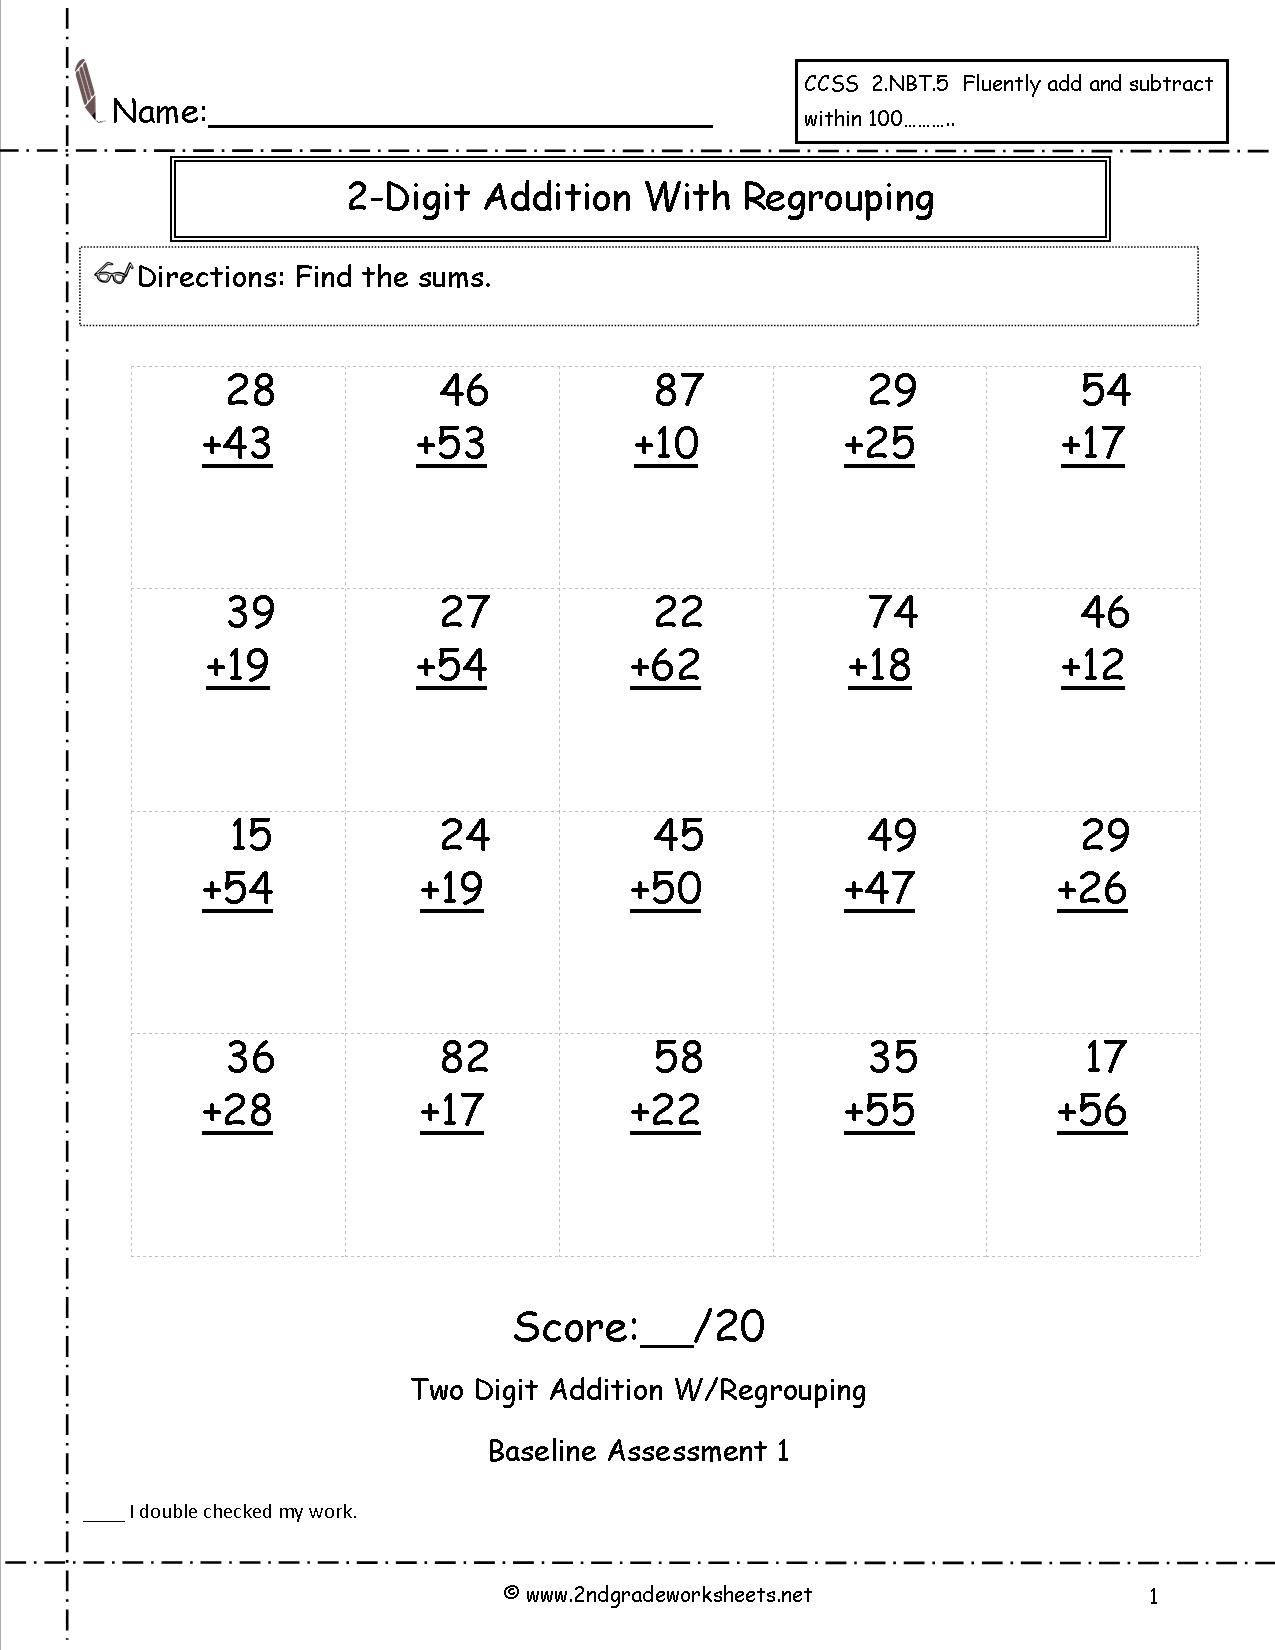 Two Digit Addition With Regrouping Assessment With Images